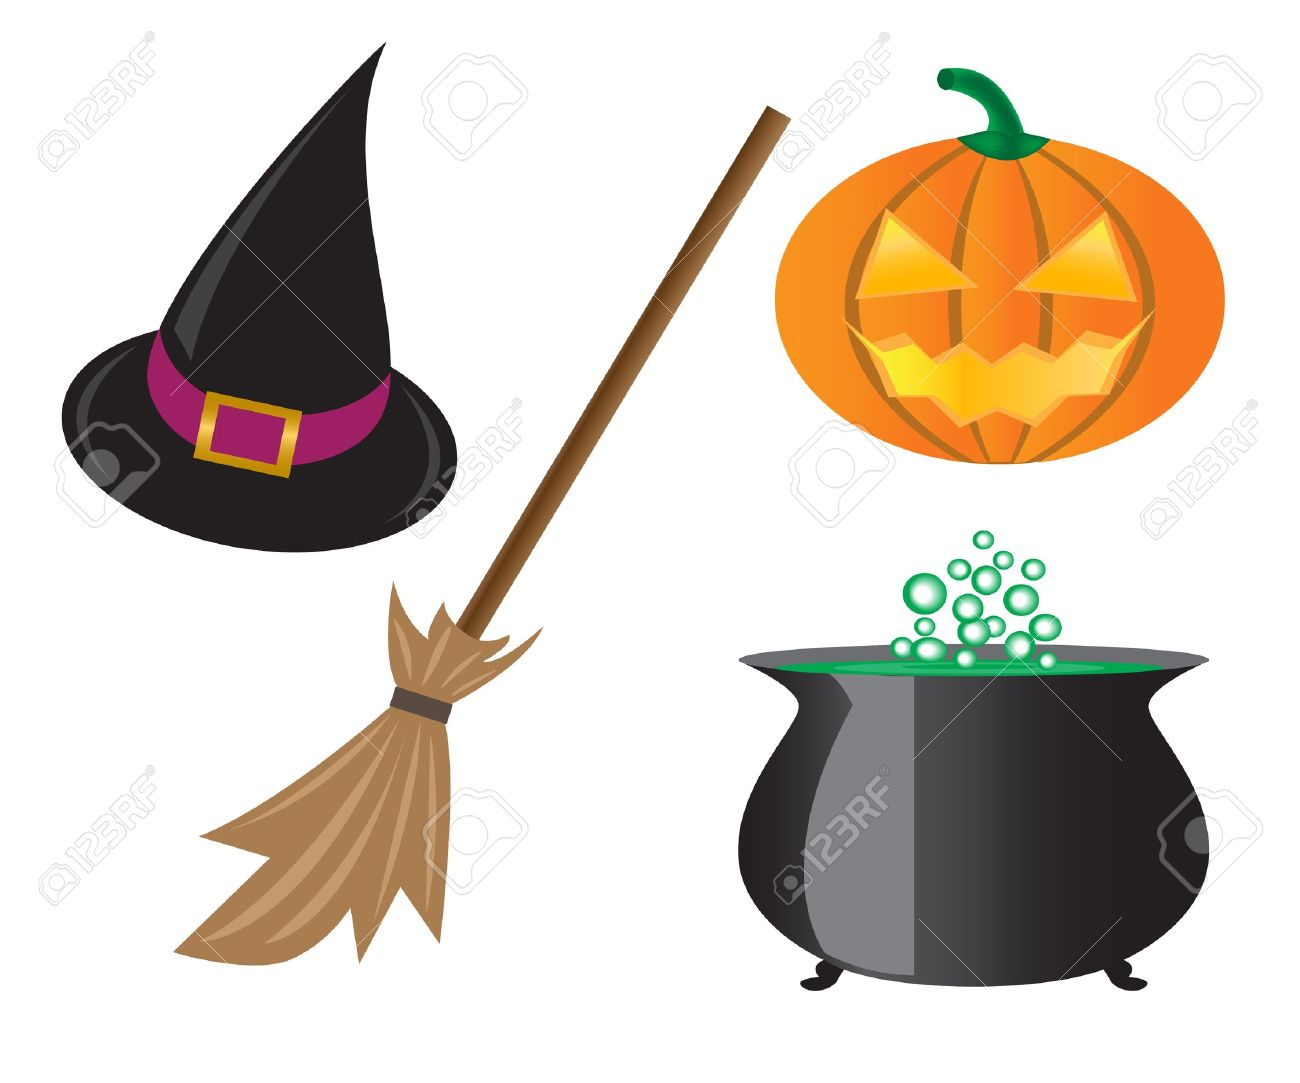 Things For Halloween Pumpkins Witches Hat Pot And A Broom Royalty Free Cliparts Vectors And Stock Illustration Image 14380802